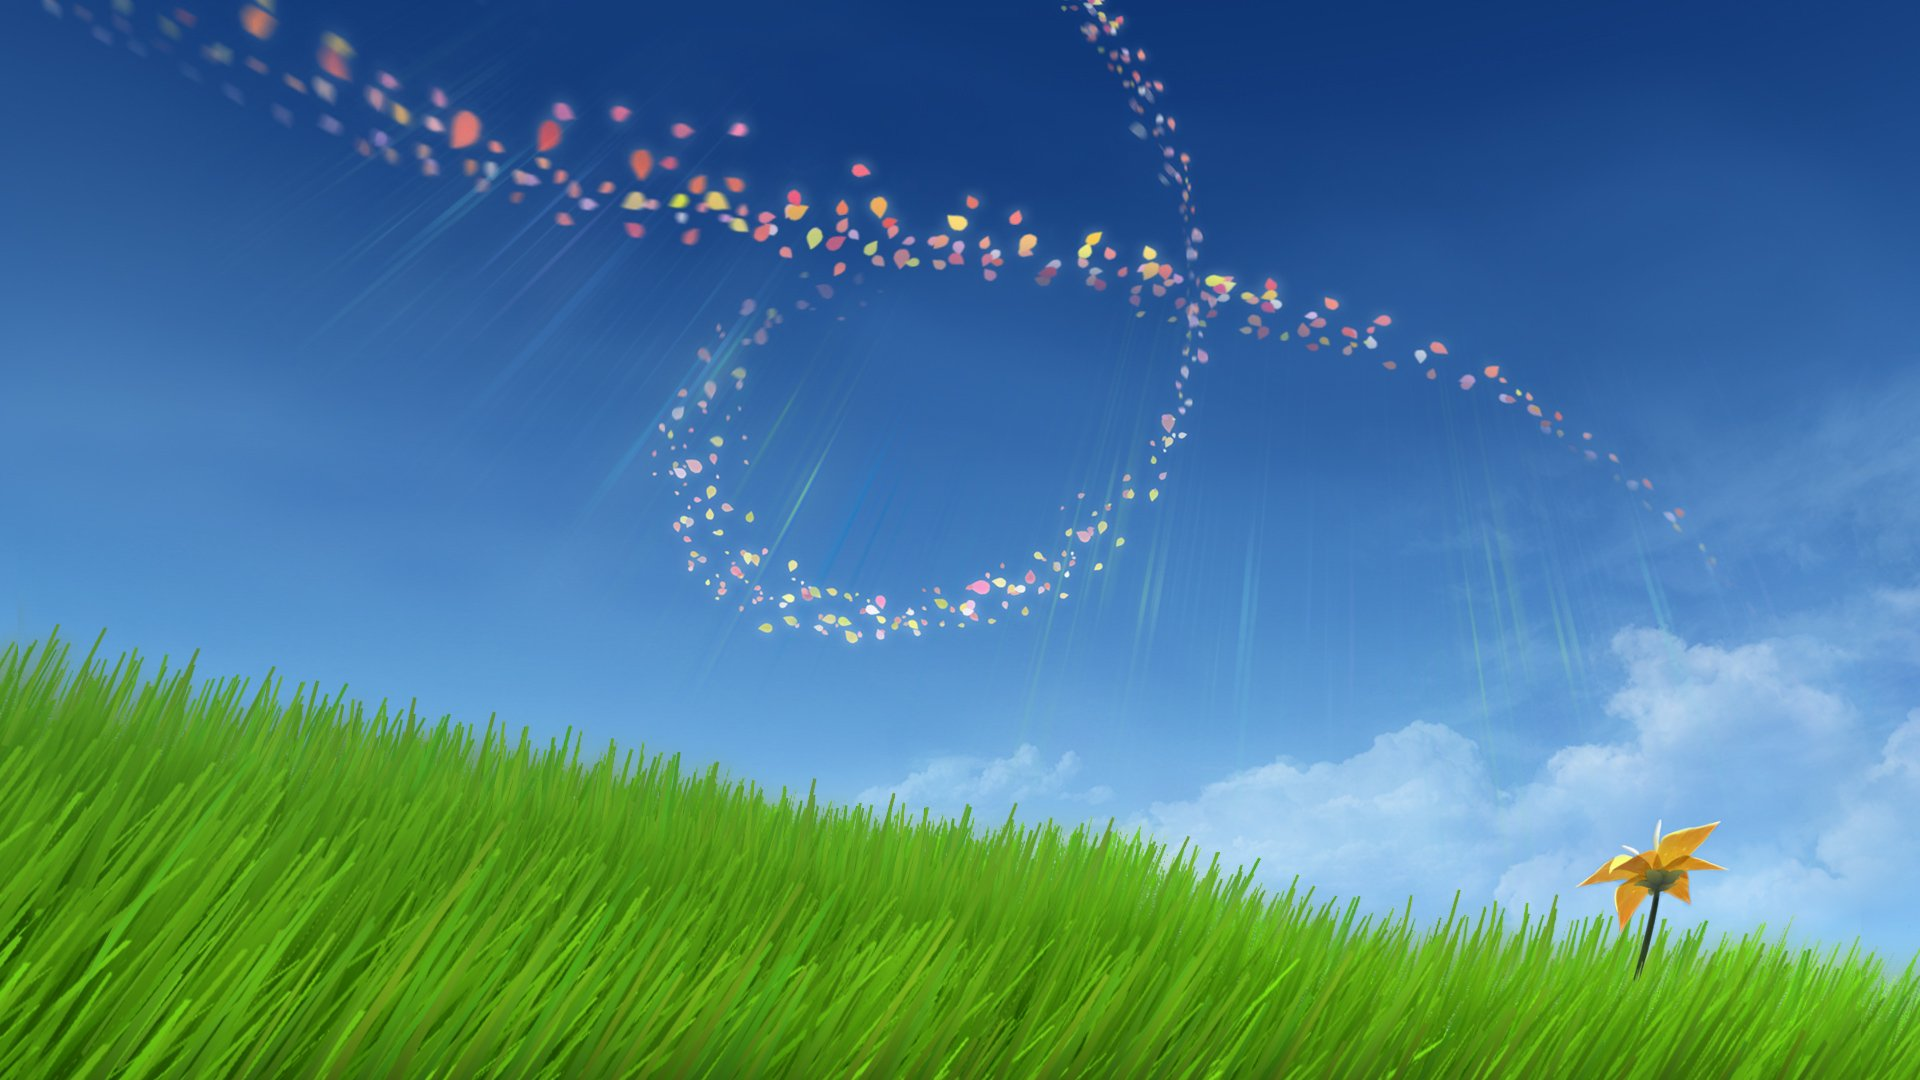 thatgamecompany's serene Flower is now on iOS screenshot